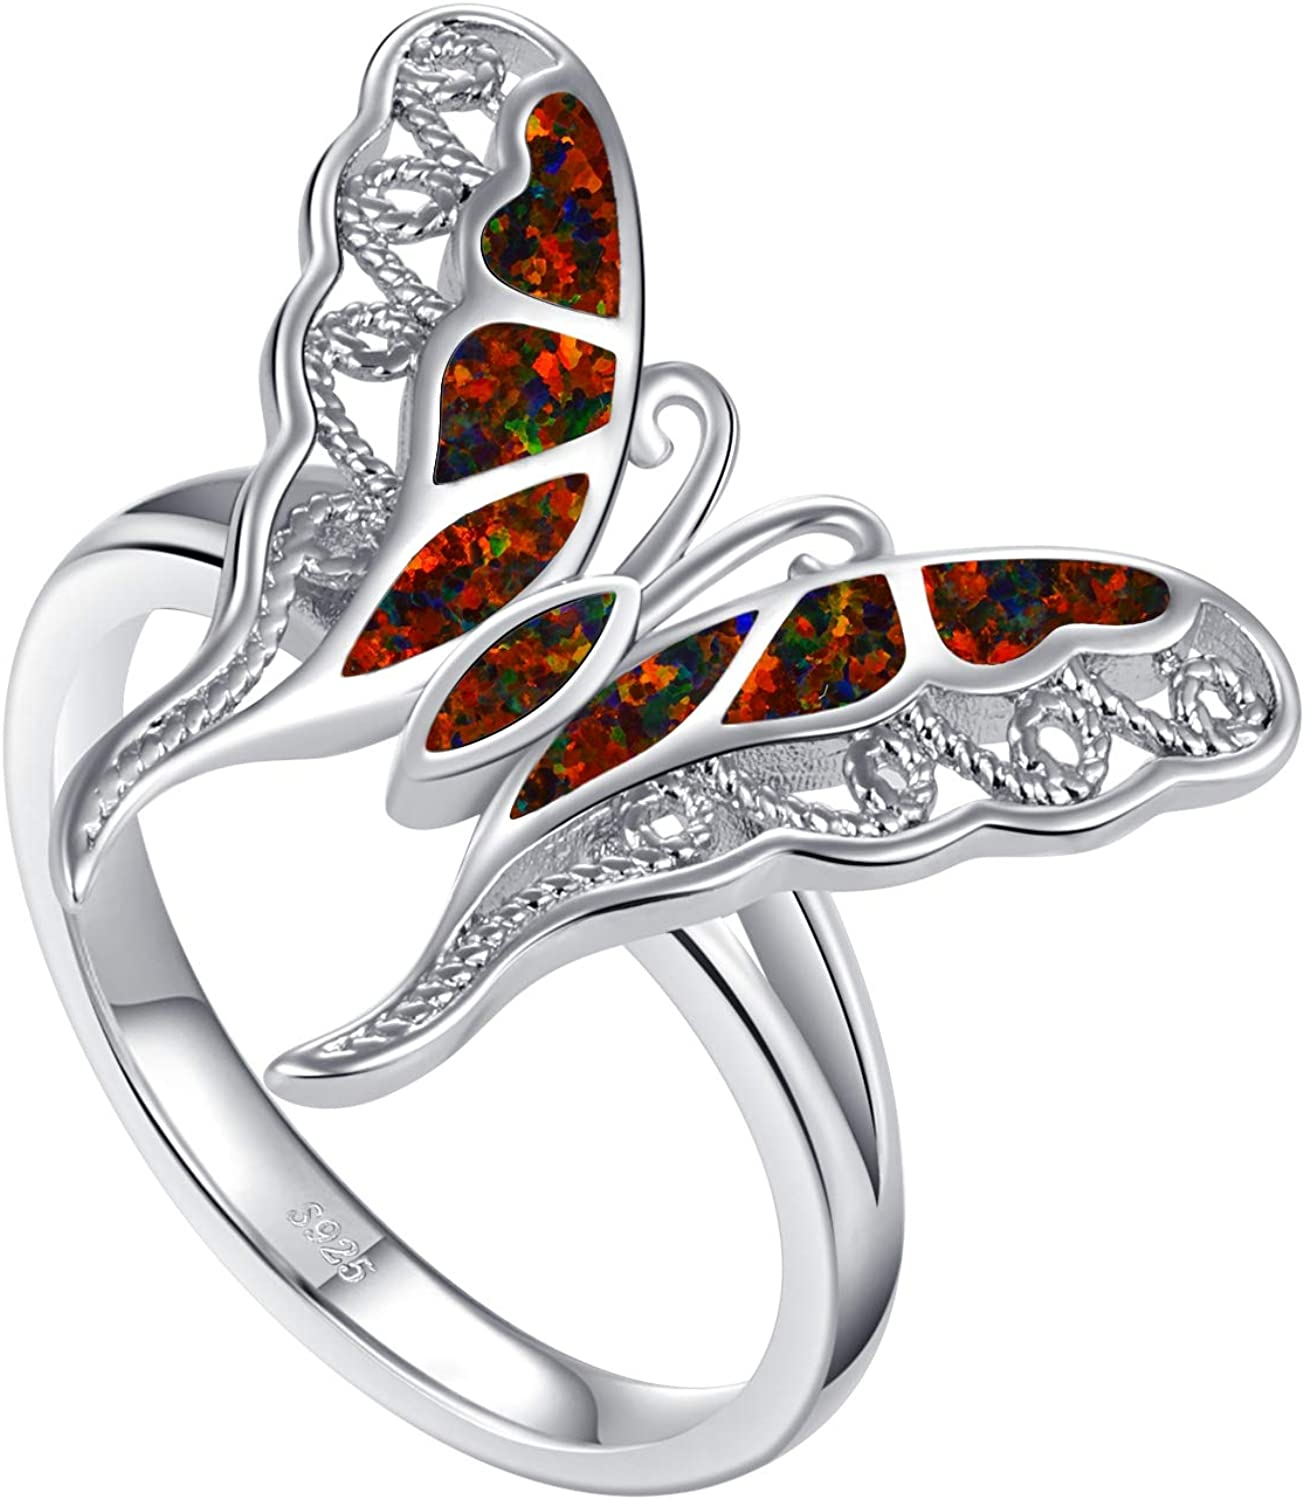 Opal Max 64% OFF Gem Vivid Butterfly Rings Plated Silver Created Abalone or 2021 model